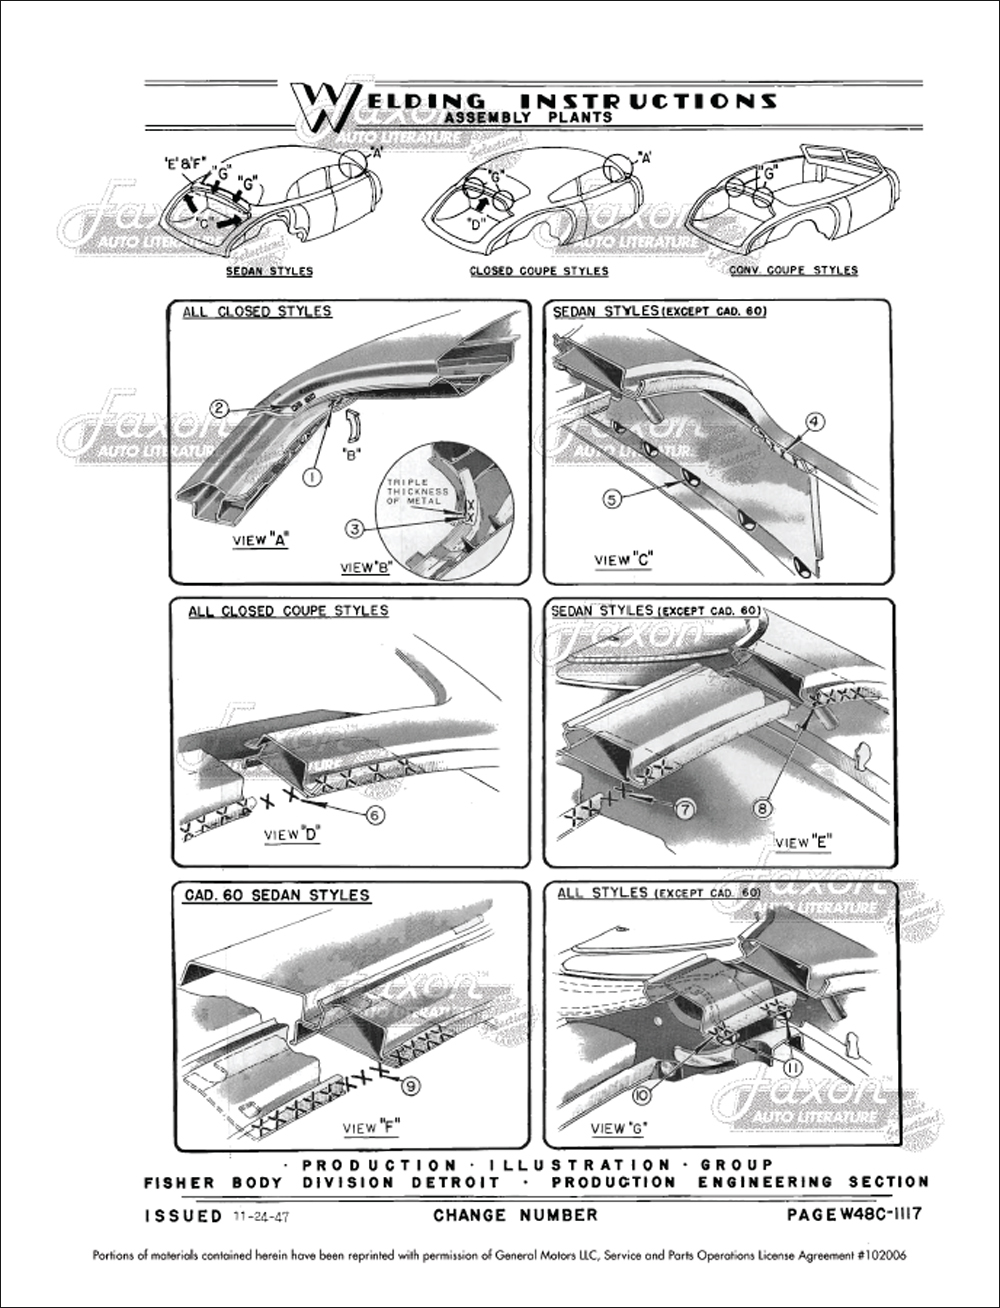 1948-1949 Fisher Body Welding Assembly Service Manual